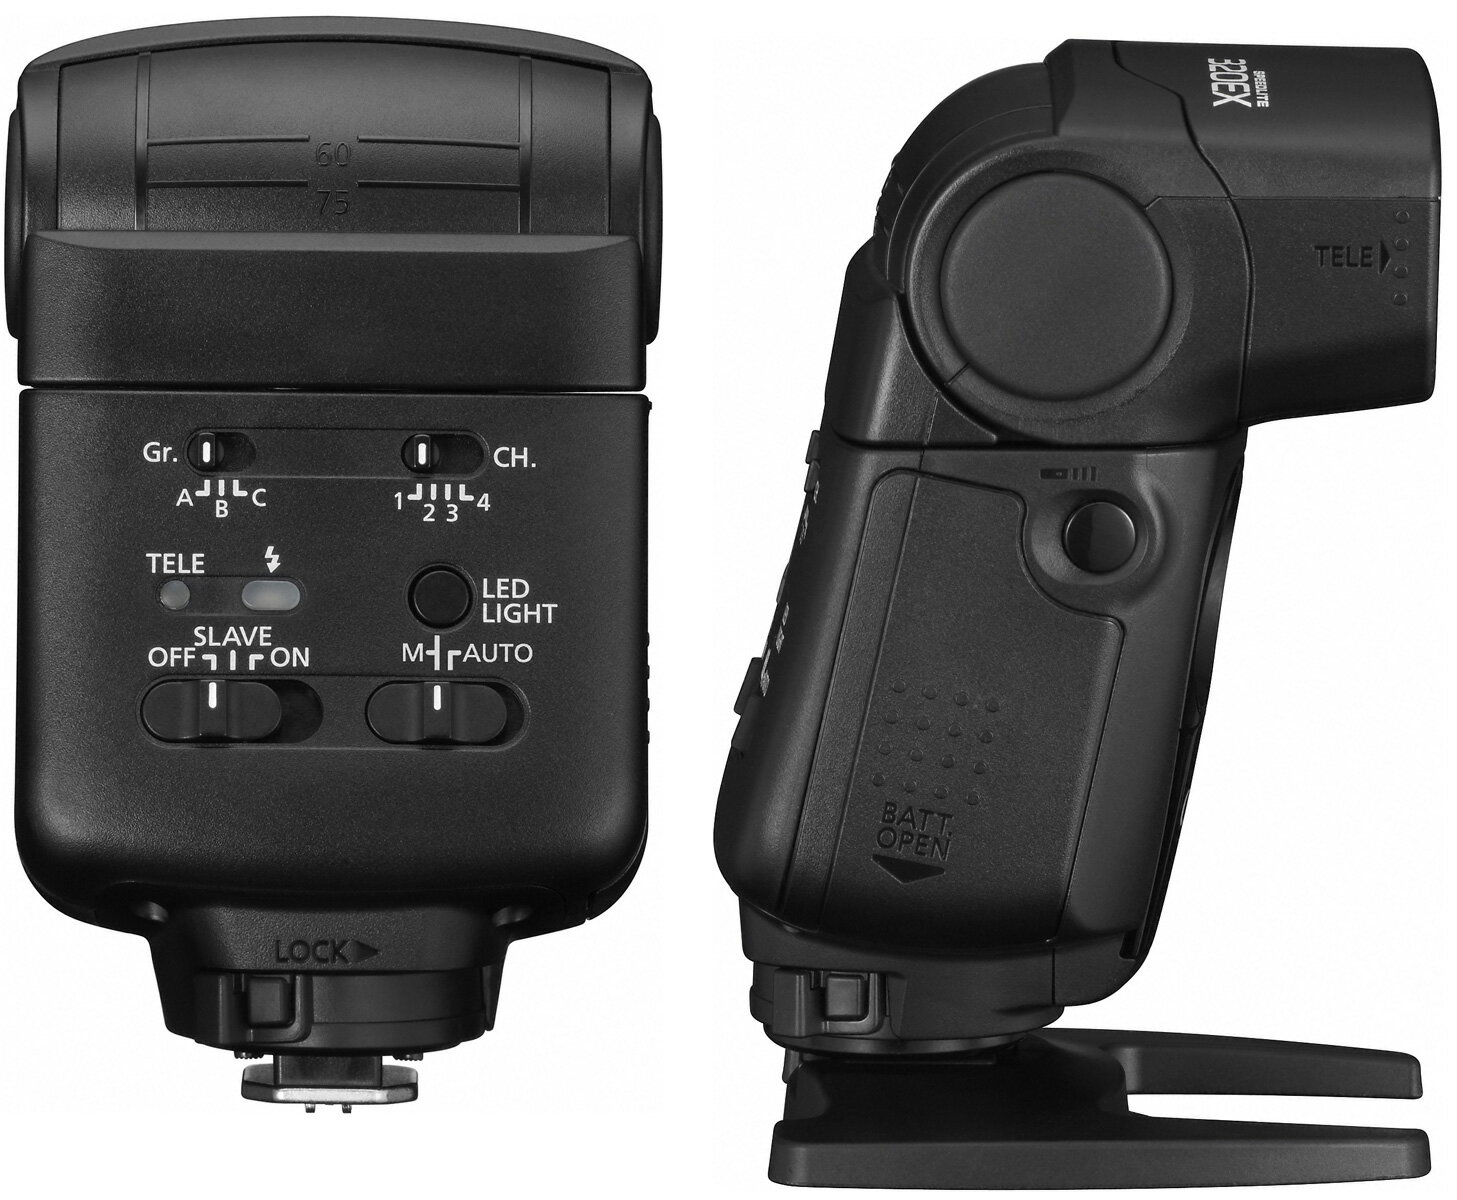 canon speedlite 320ex instruction manual